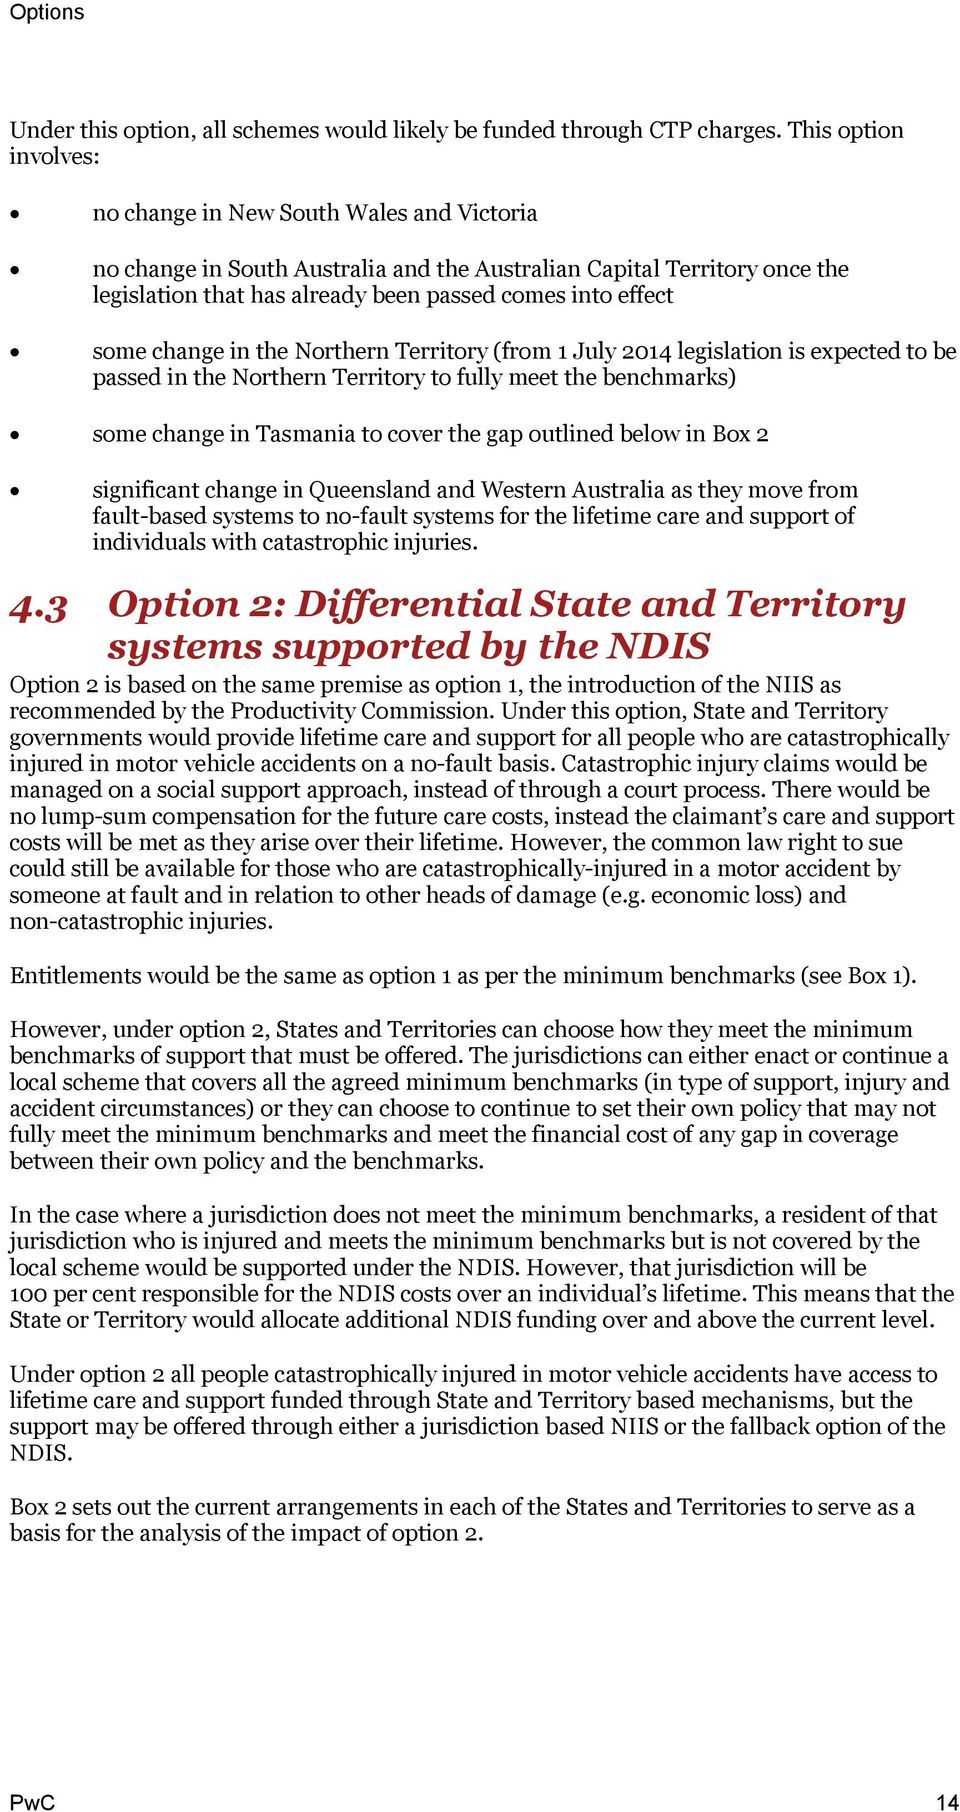 some change in the Northern Territory (from 1 July 2014 legislation is expected to be passed in the Northern Territory to fully meet the benchmarks) some change in Tasmania to cover the gap outlined